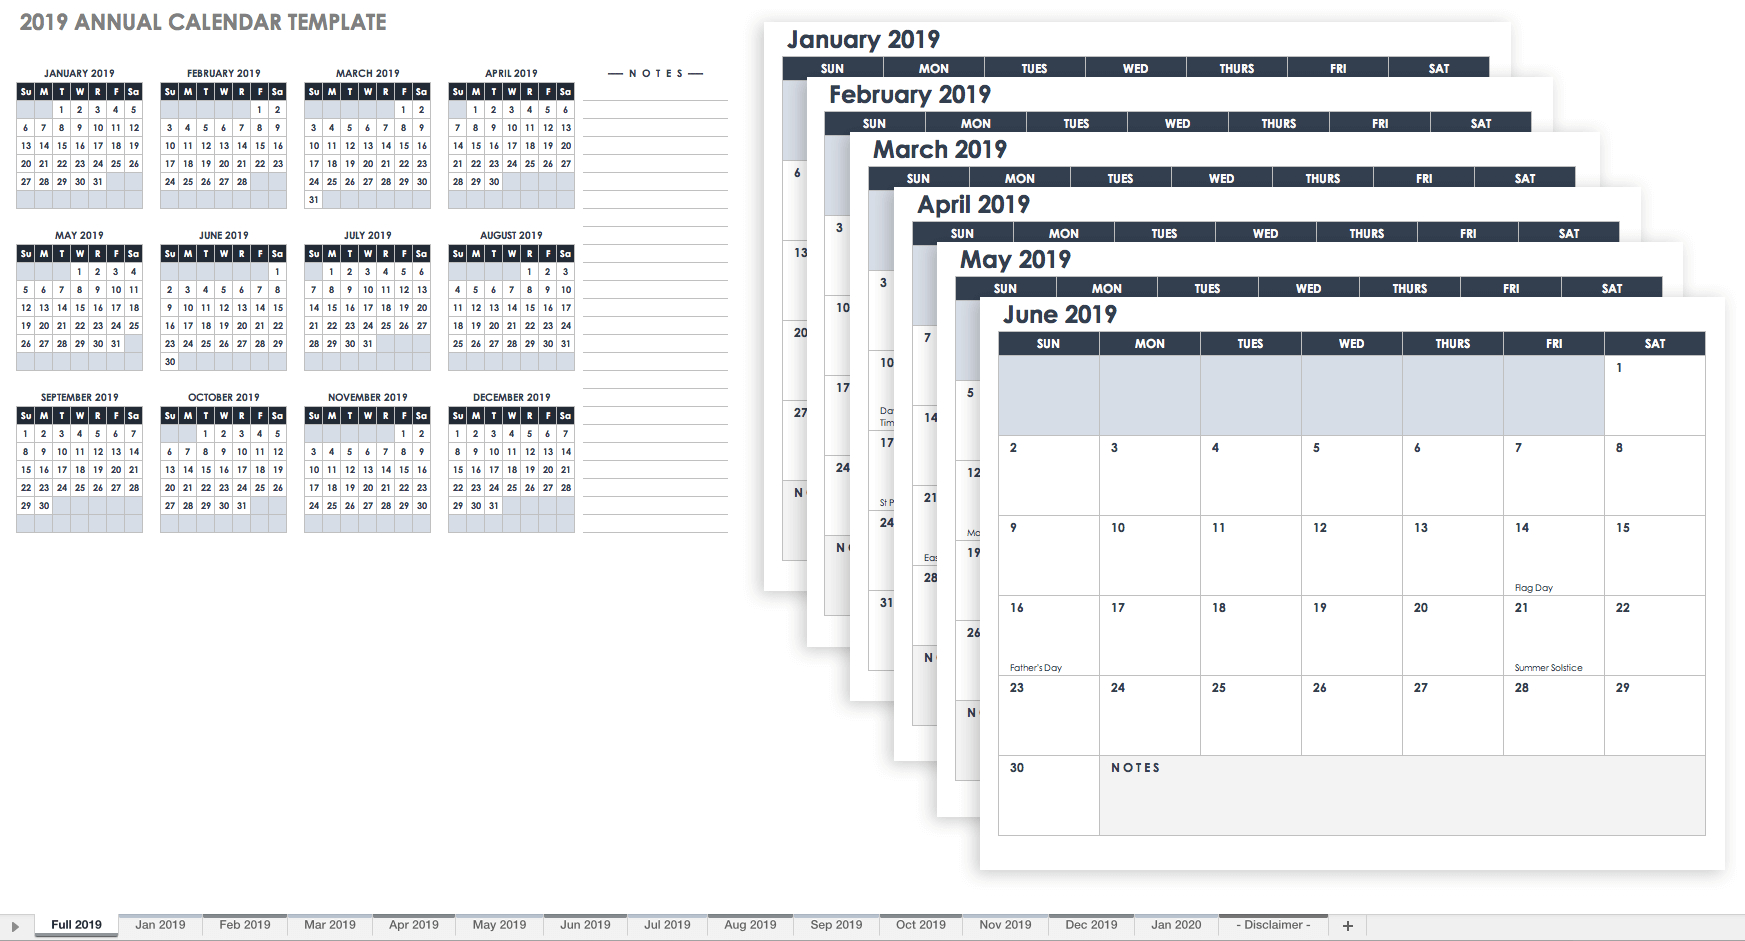 15 Free Monthly Calendar Templates | Smartsheet in Calendar 2020 Year At A Glance Free Printable